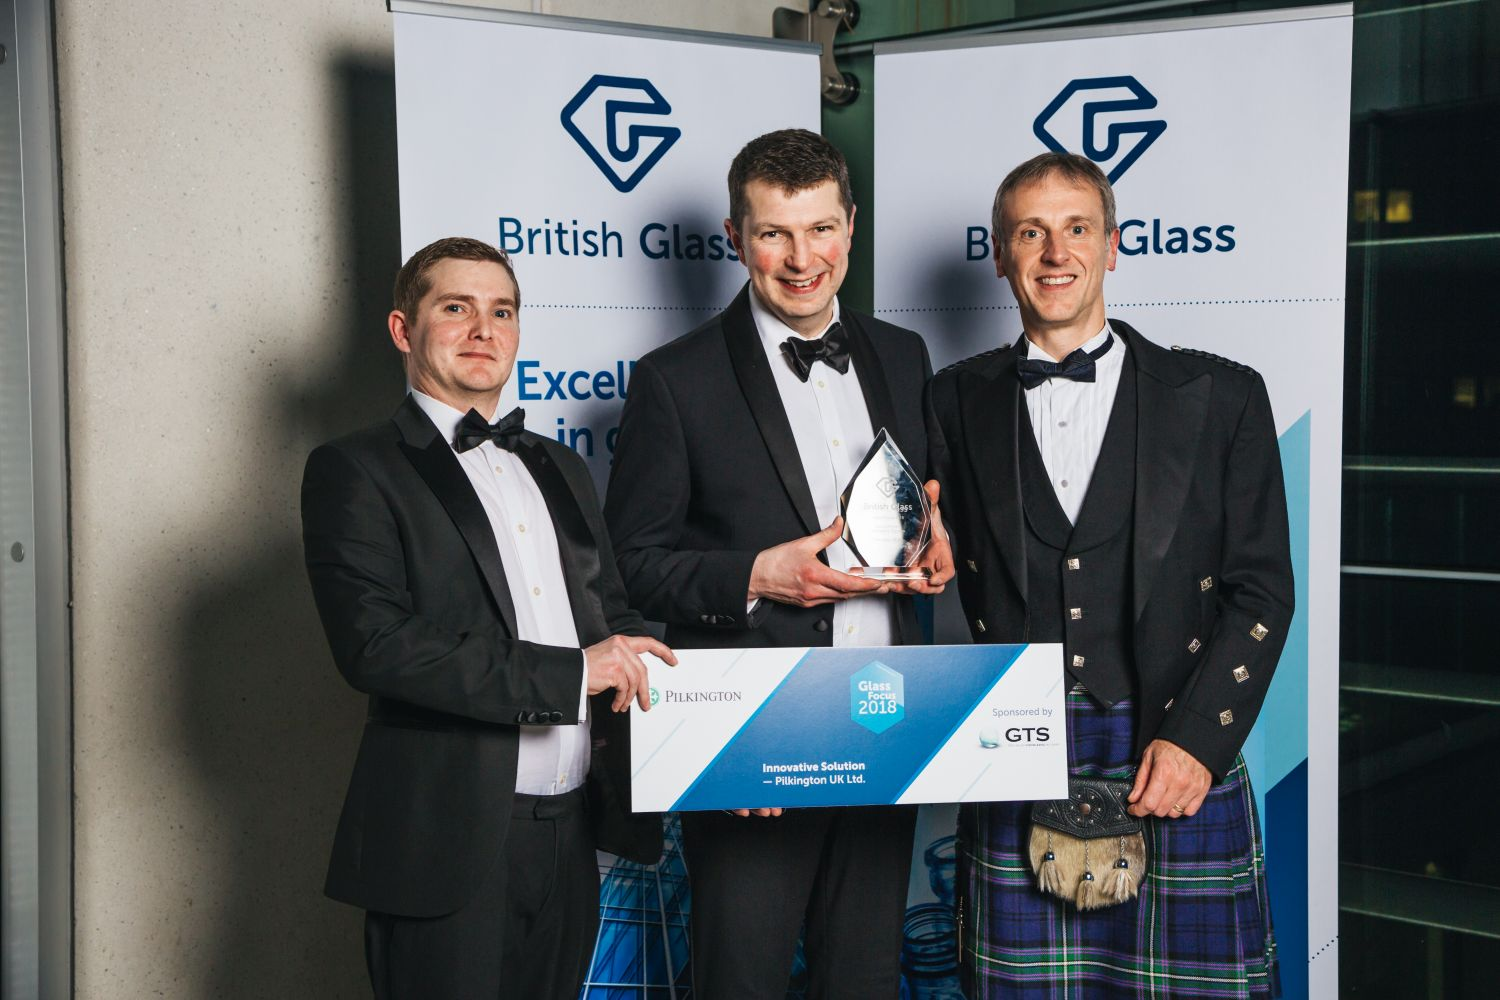 Innovative Solution winner Pilkington UK. with Phillip Marsh of Glass Technology Services Ltd.